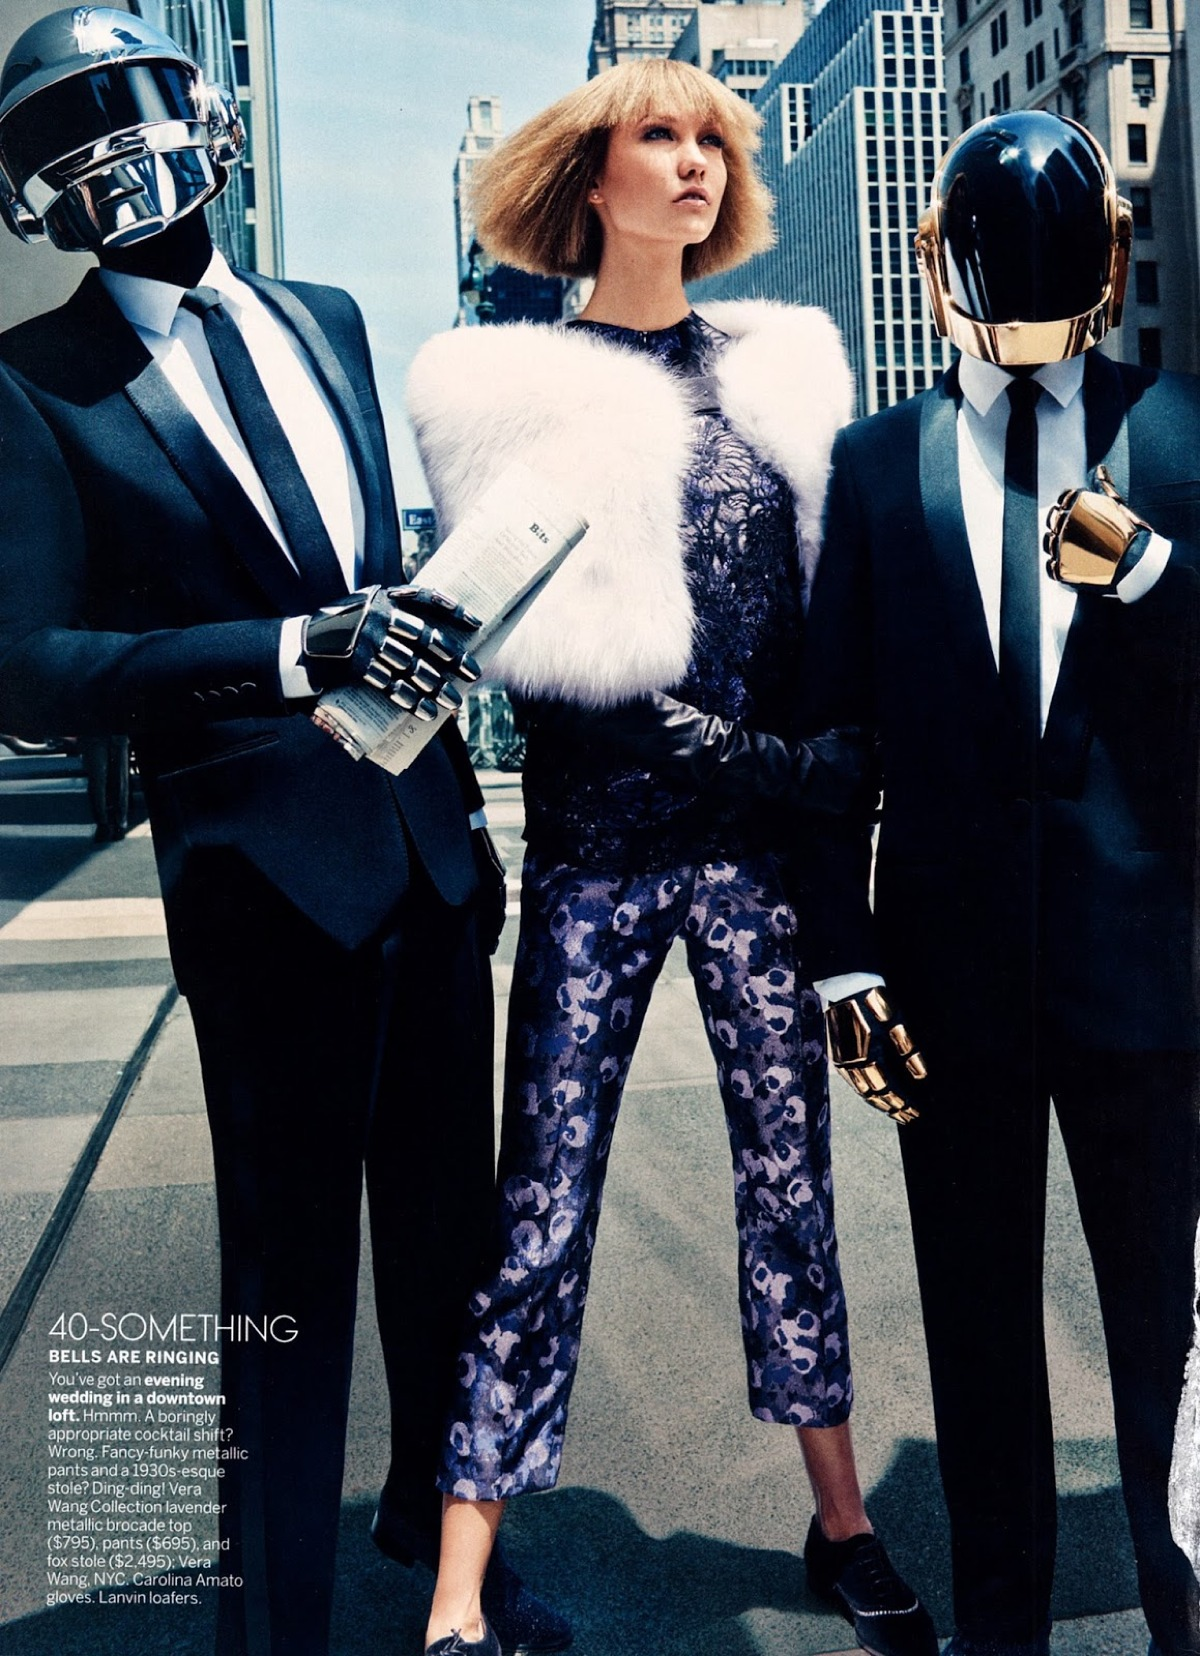 Fashion Scans Remastered-Karlie Kloss-Vogue Usa-August 2013-Scanned By Vampirehorde-Hq-9